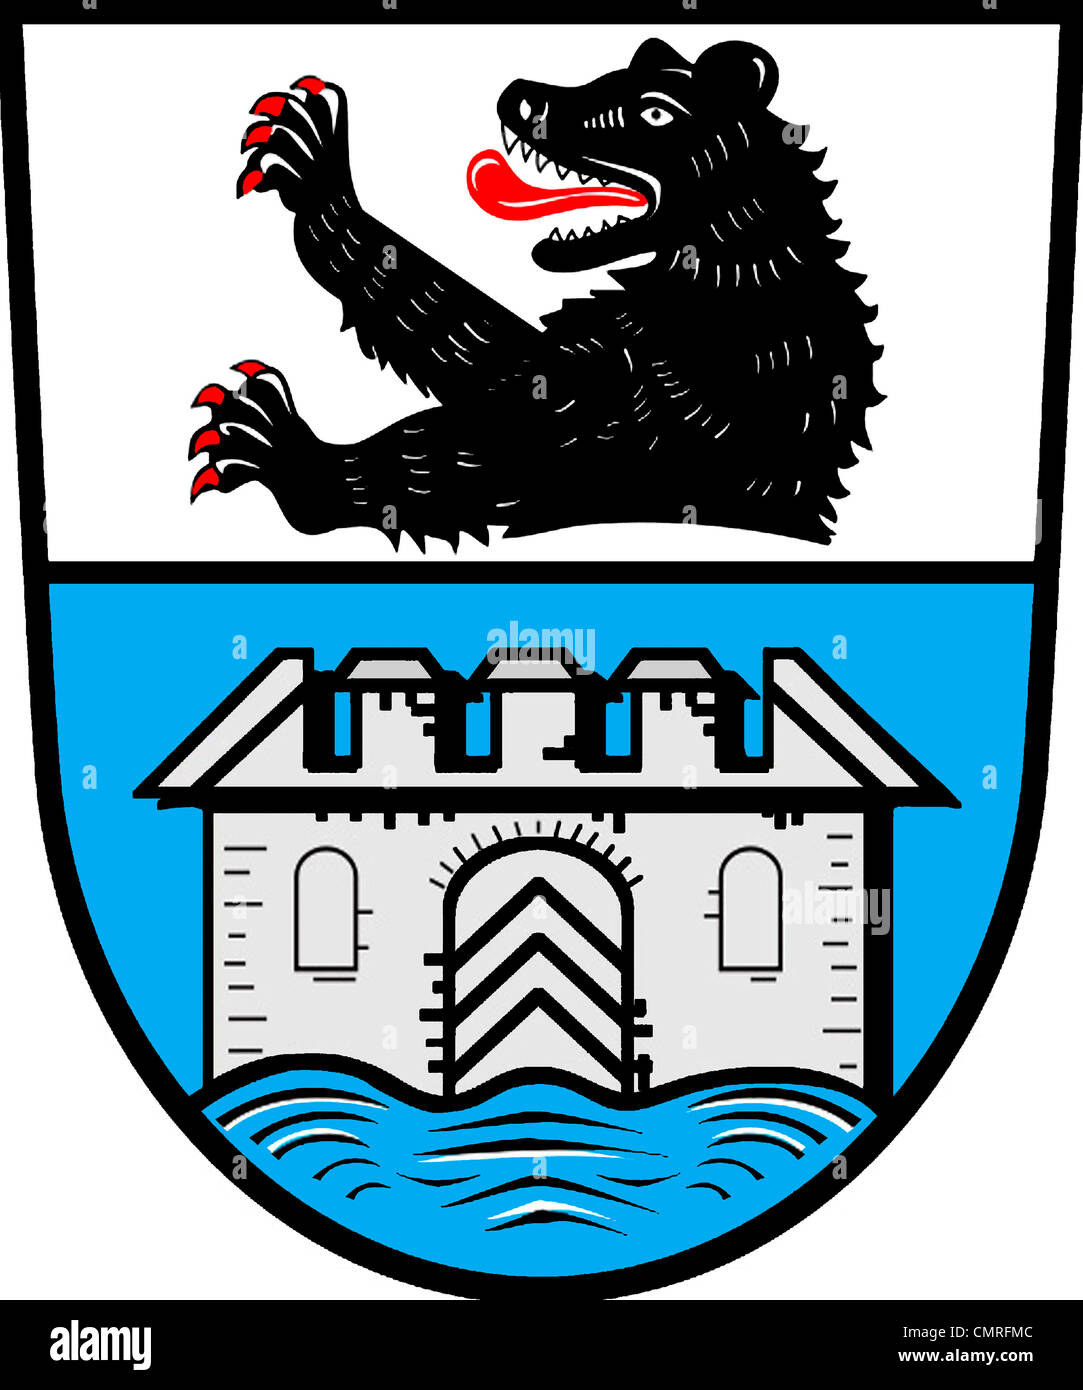 Coat of arms of the city Wasserburg at Lake Constance. Stock Photo